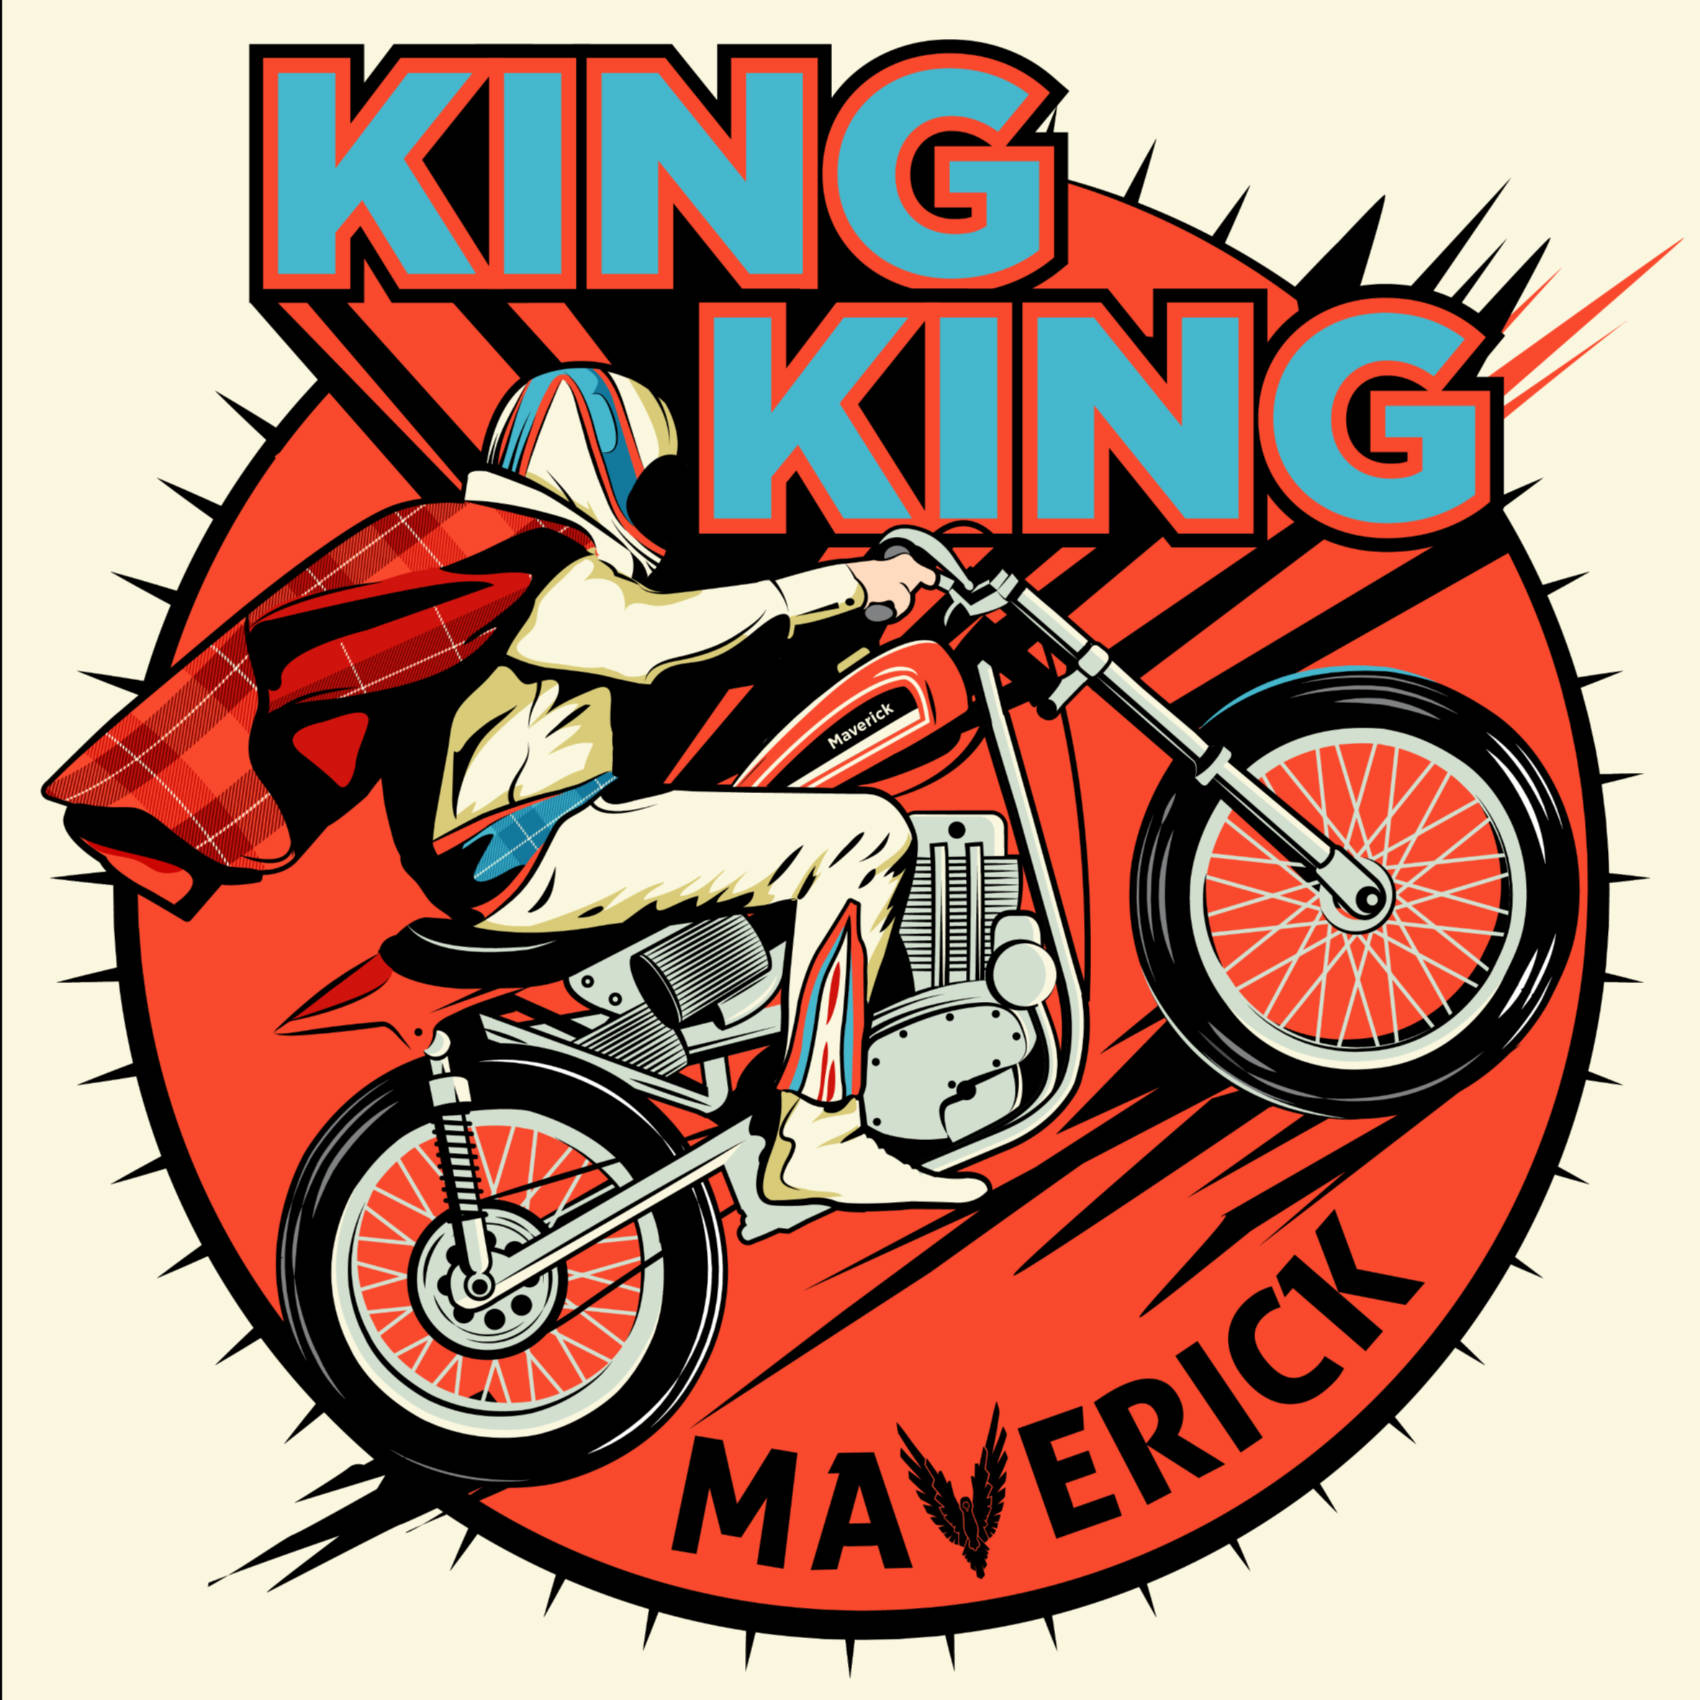 King King are true Mavericks